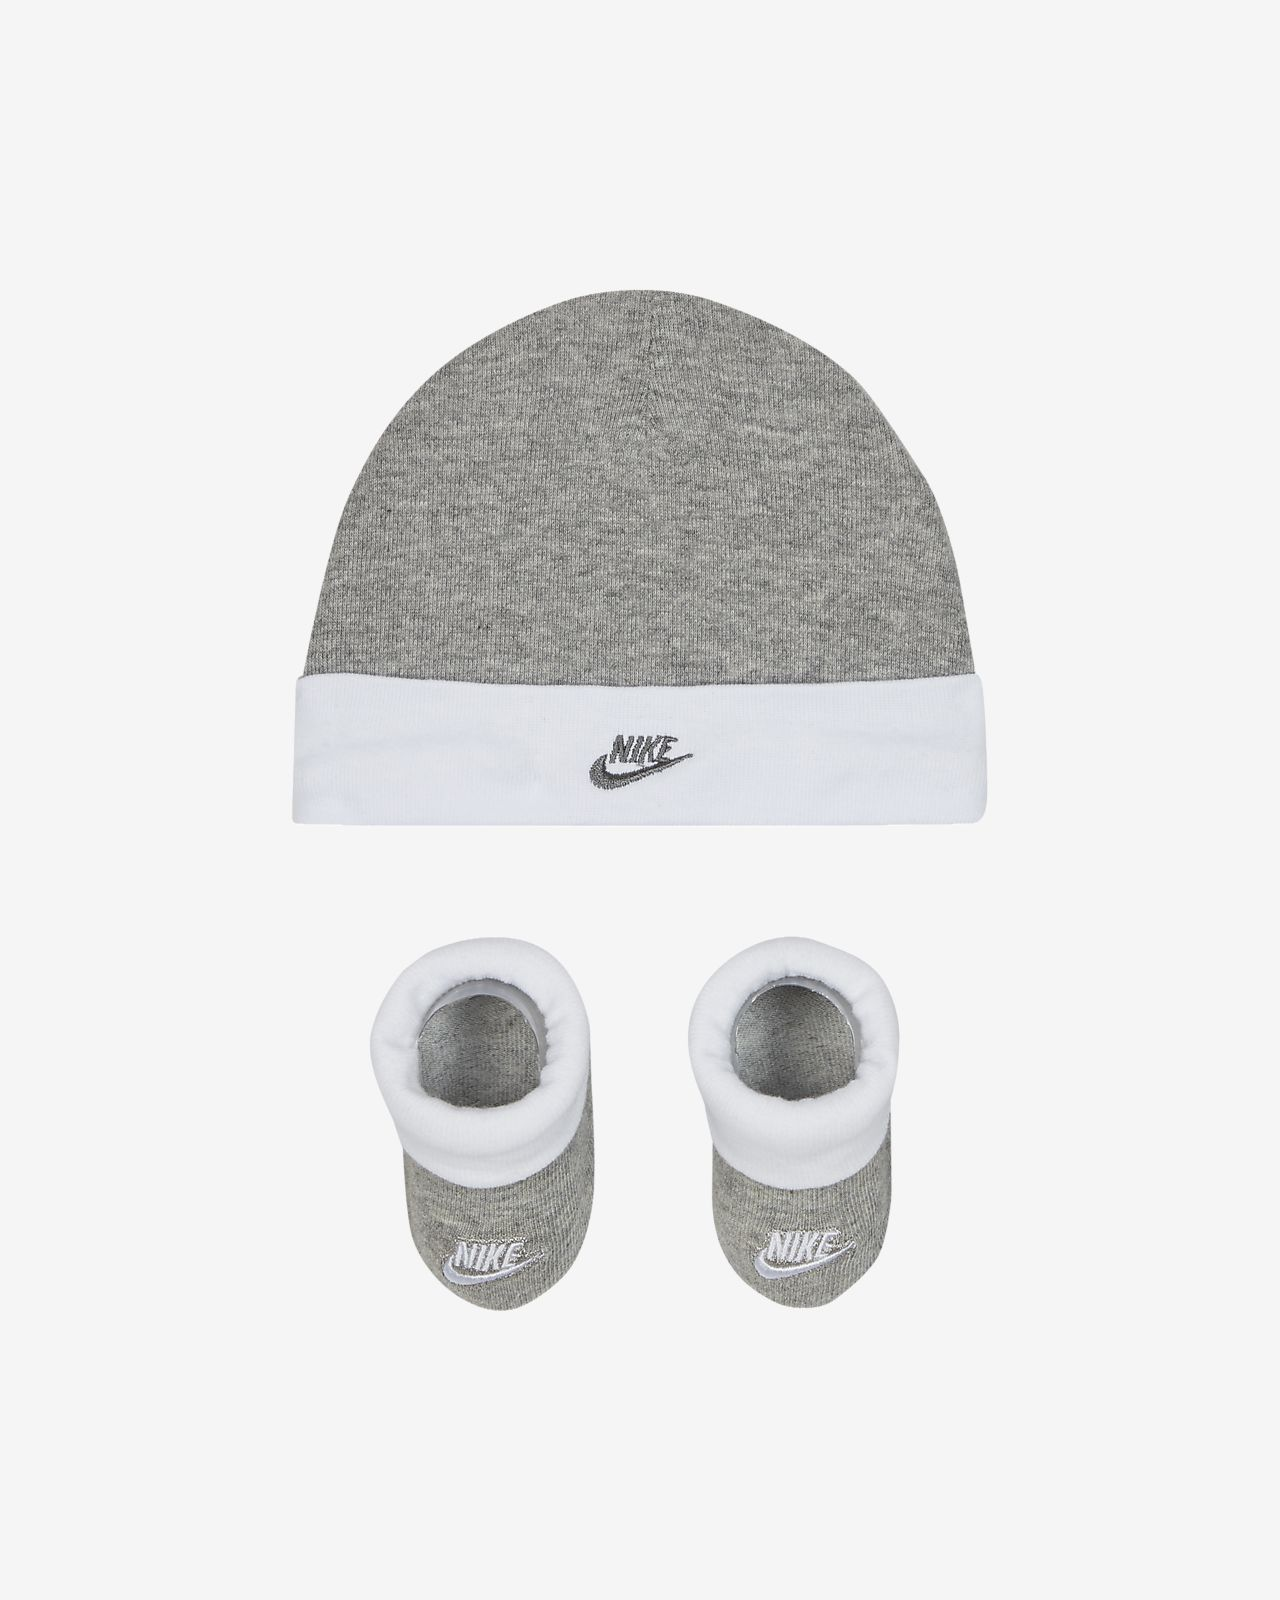 Nike Sportswear Baby Hat and Booties Set